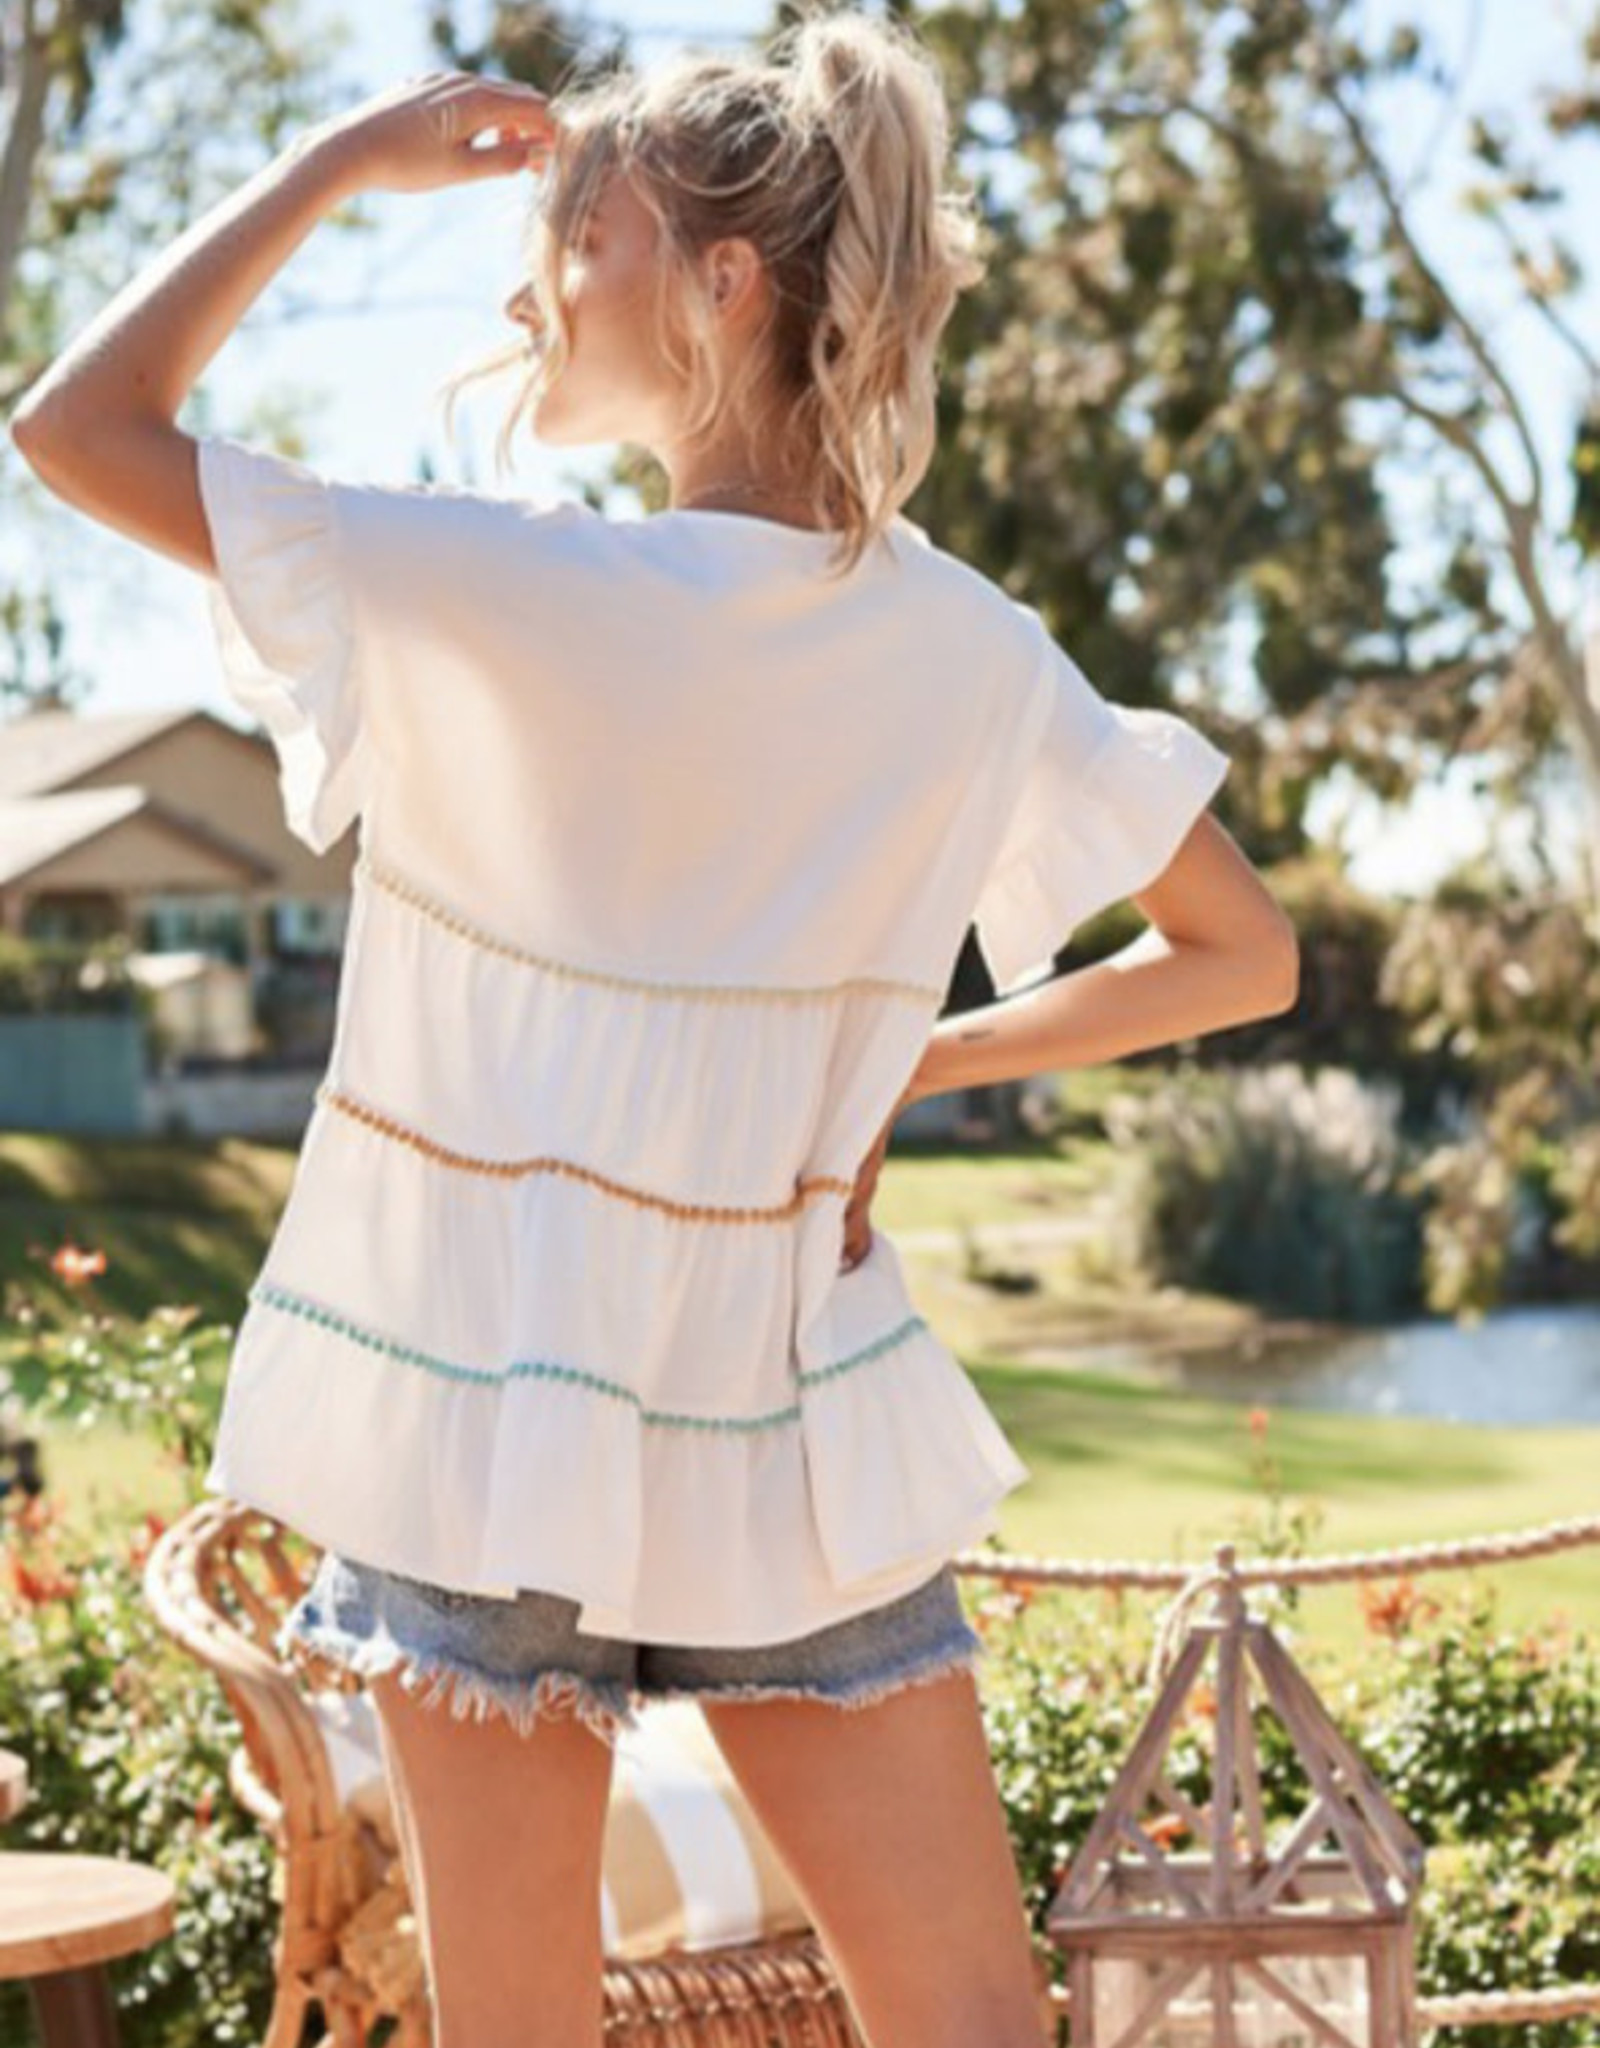 The Bliss Top